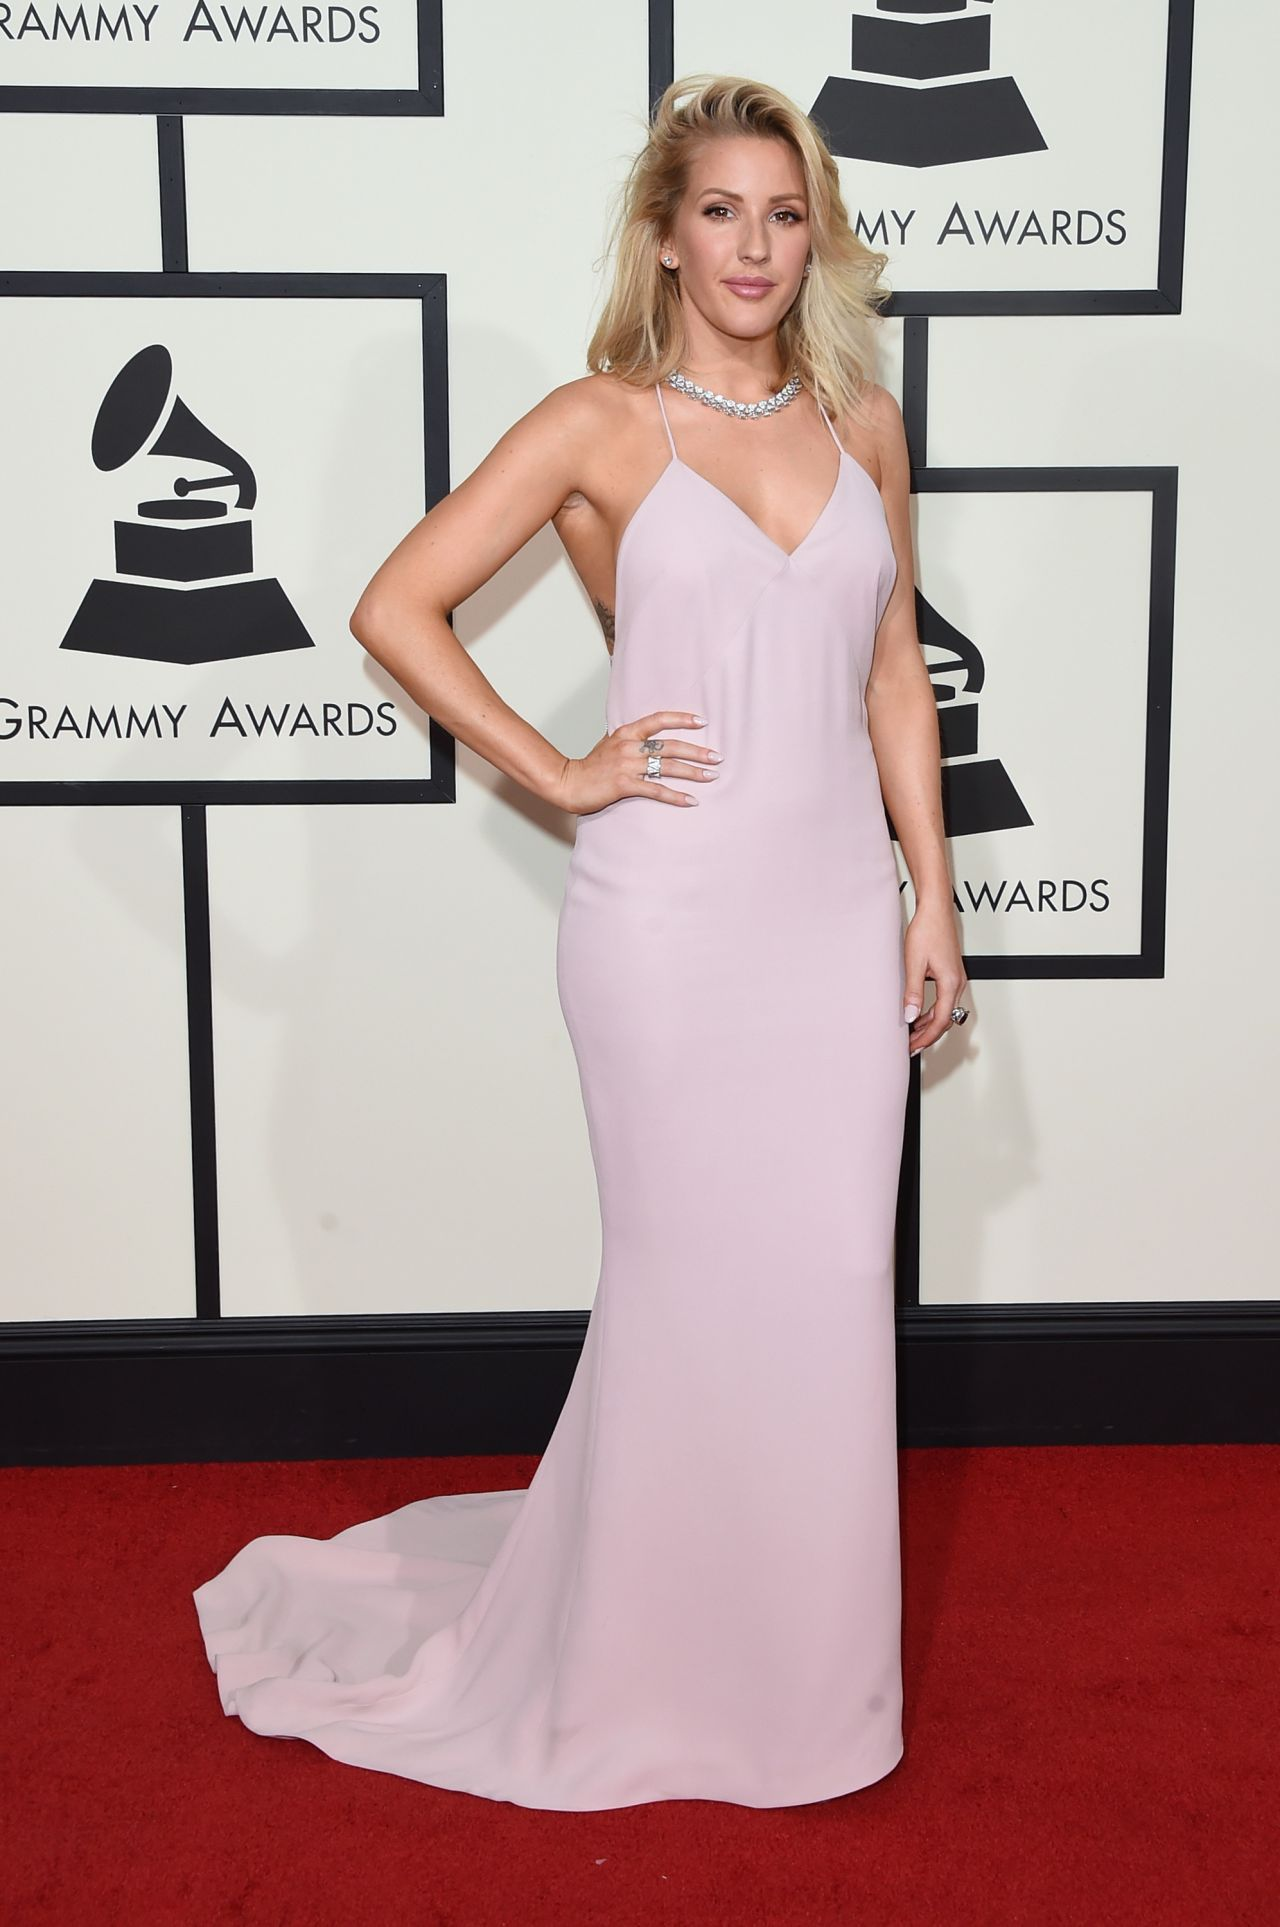 ellie-goulding-2016-grammy-awards-in-los-angeles-ca-1